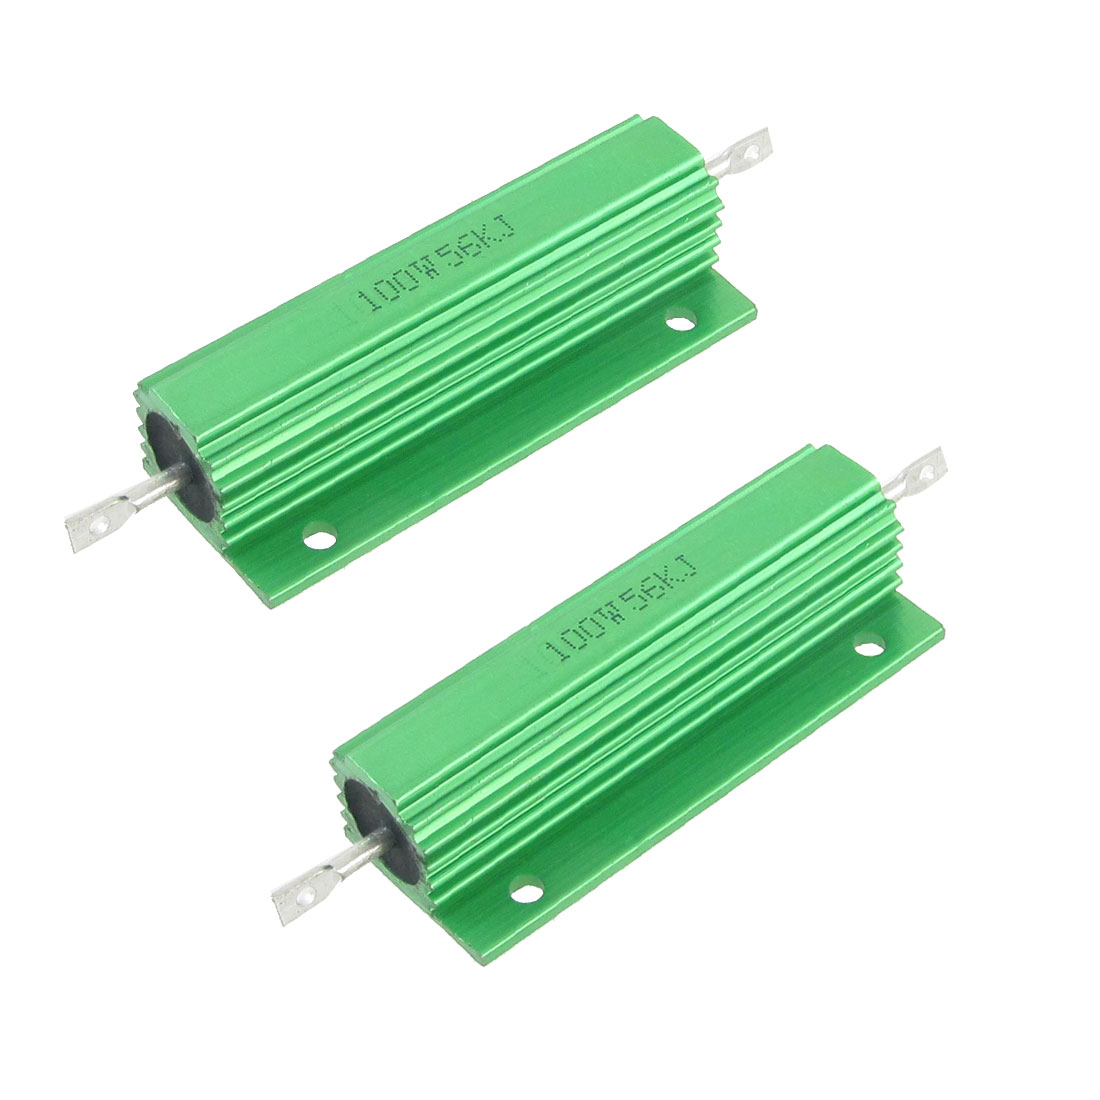 100W 56K Ohm Screw Tap Mounted Aluminum Housed Wirewound Resistors 2 Pcs